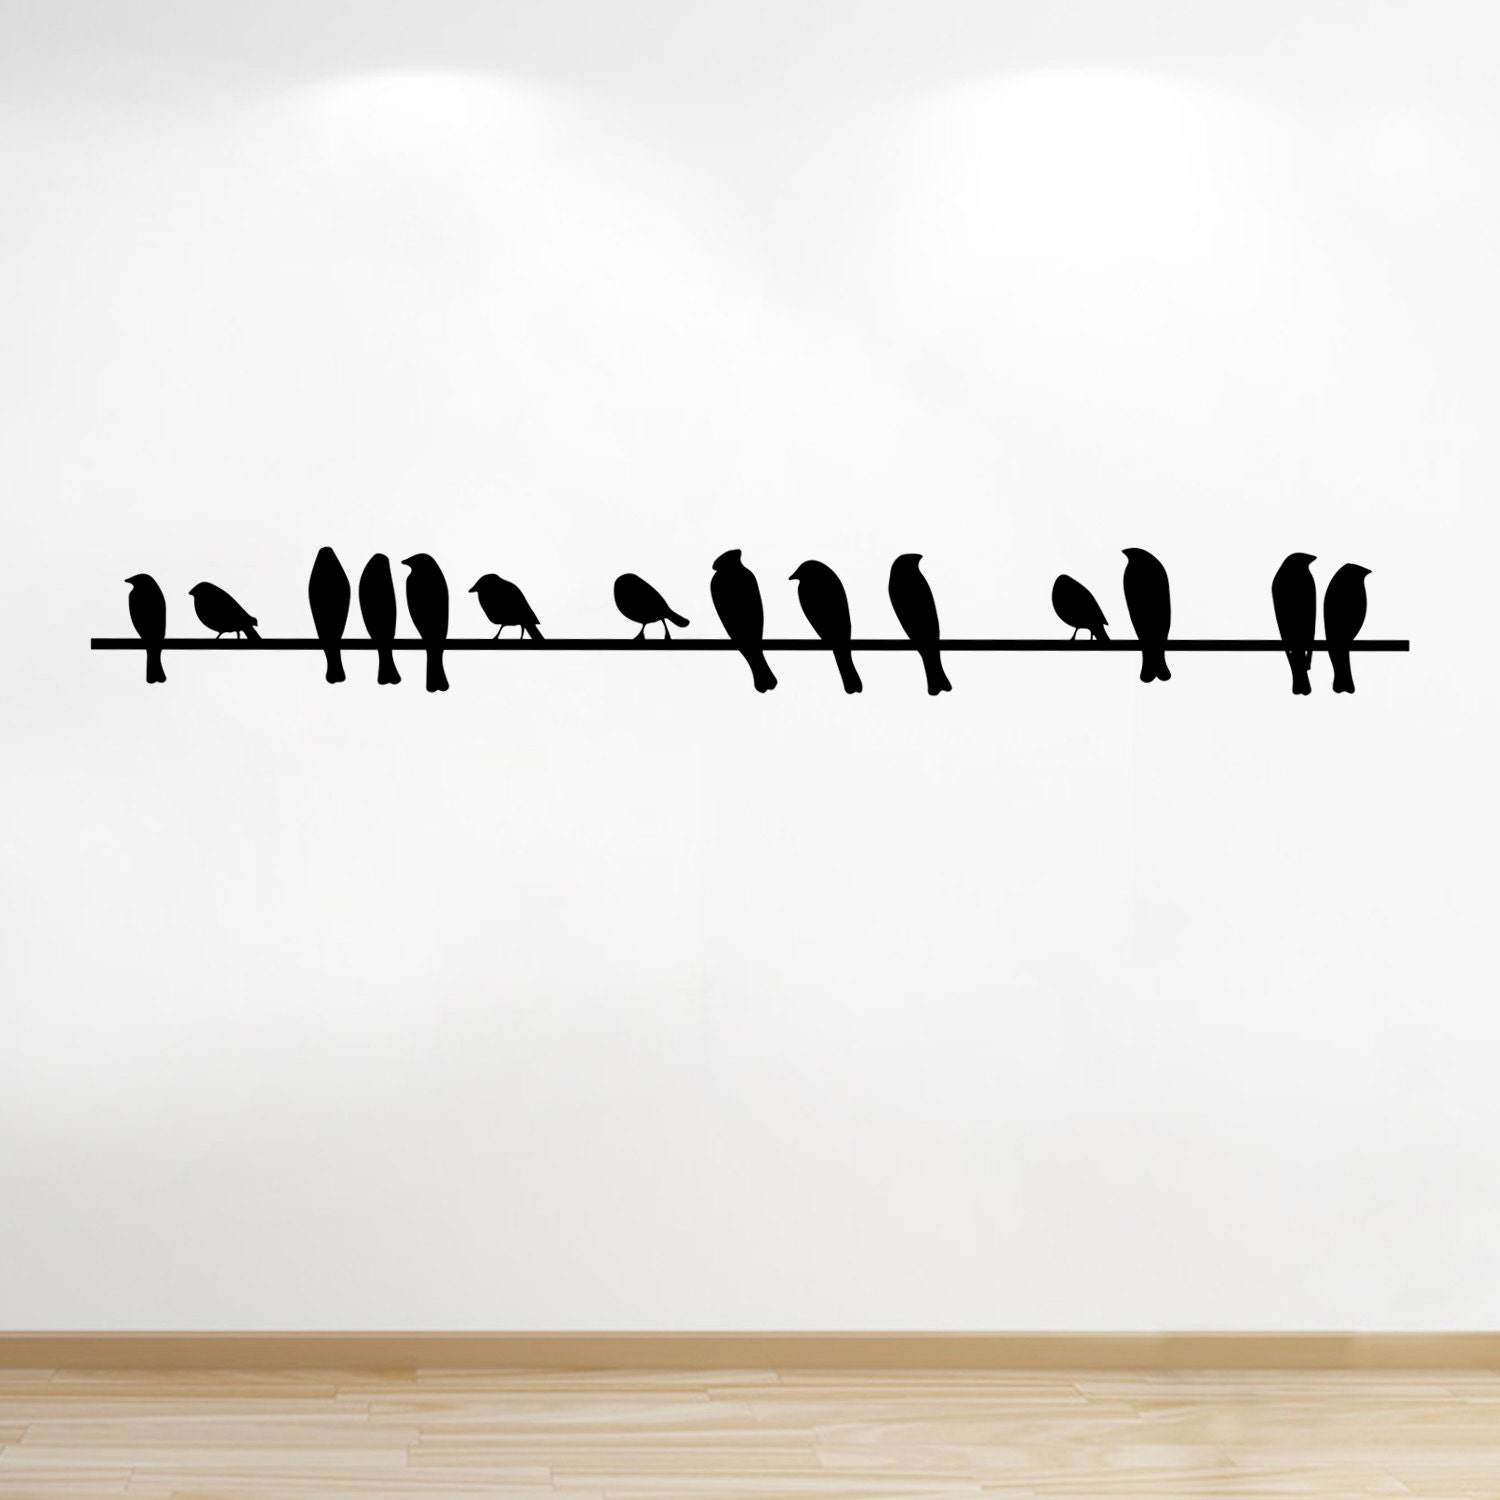 Birds On A Wire Vinyl Wall Sticker Birds Living Room Wall Sticker Wall Decal Wall Art Home Decor Bedroom Decor Christmas Gift Idea